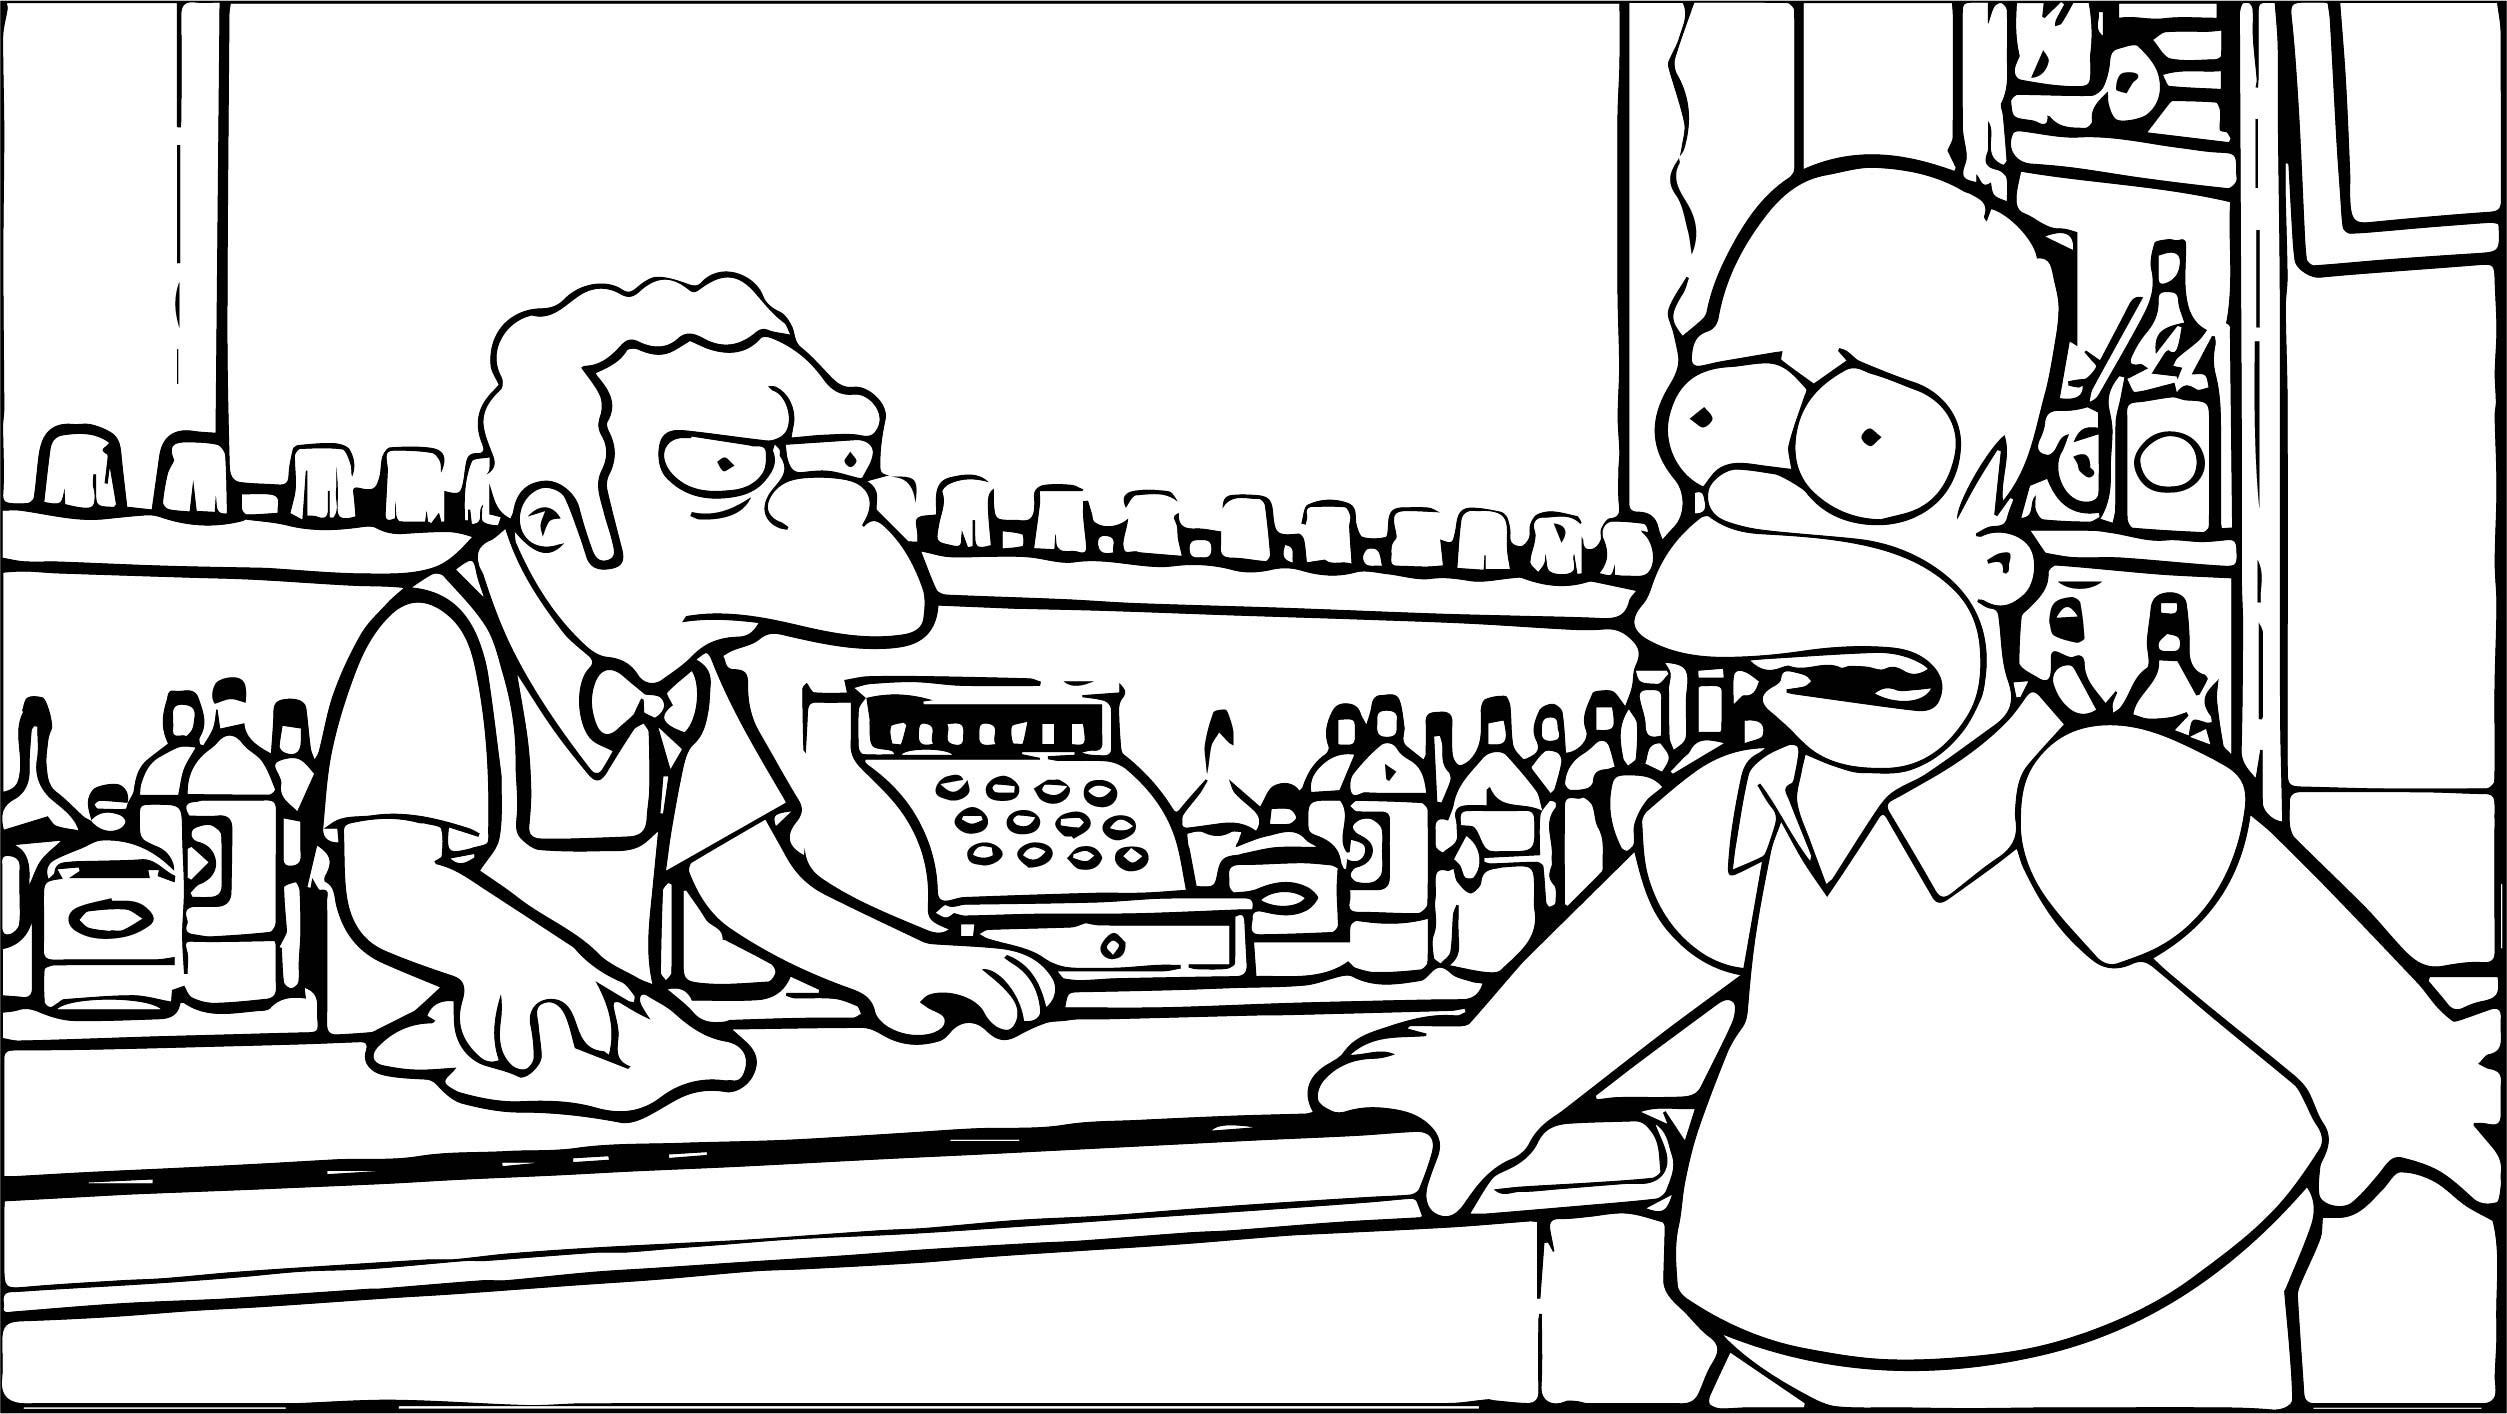 The Simpsons Coloring Page wecoloringage